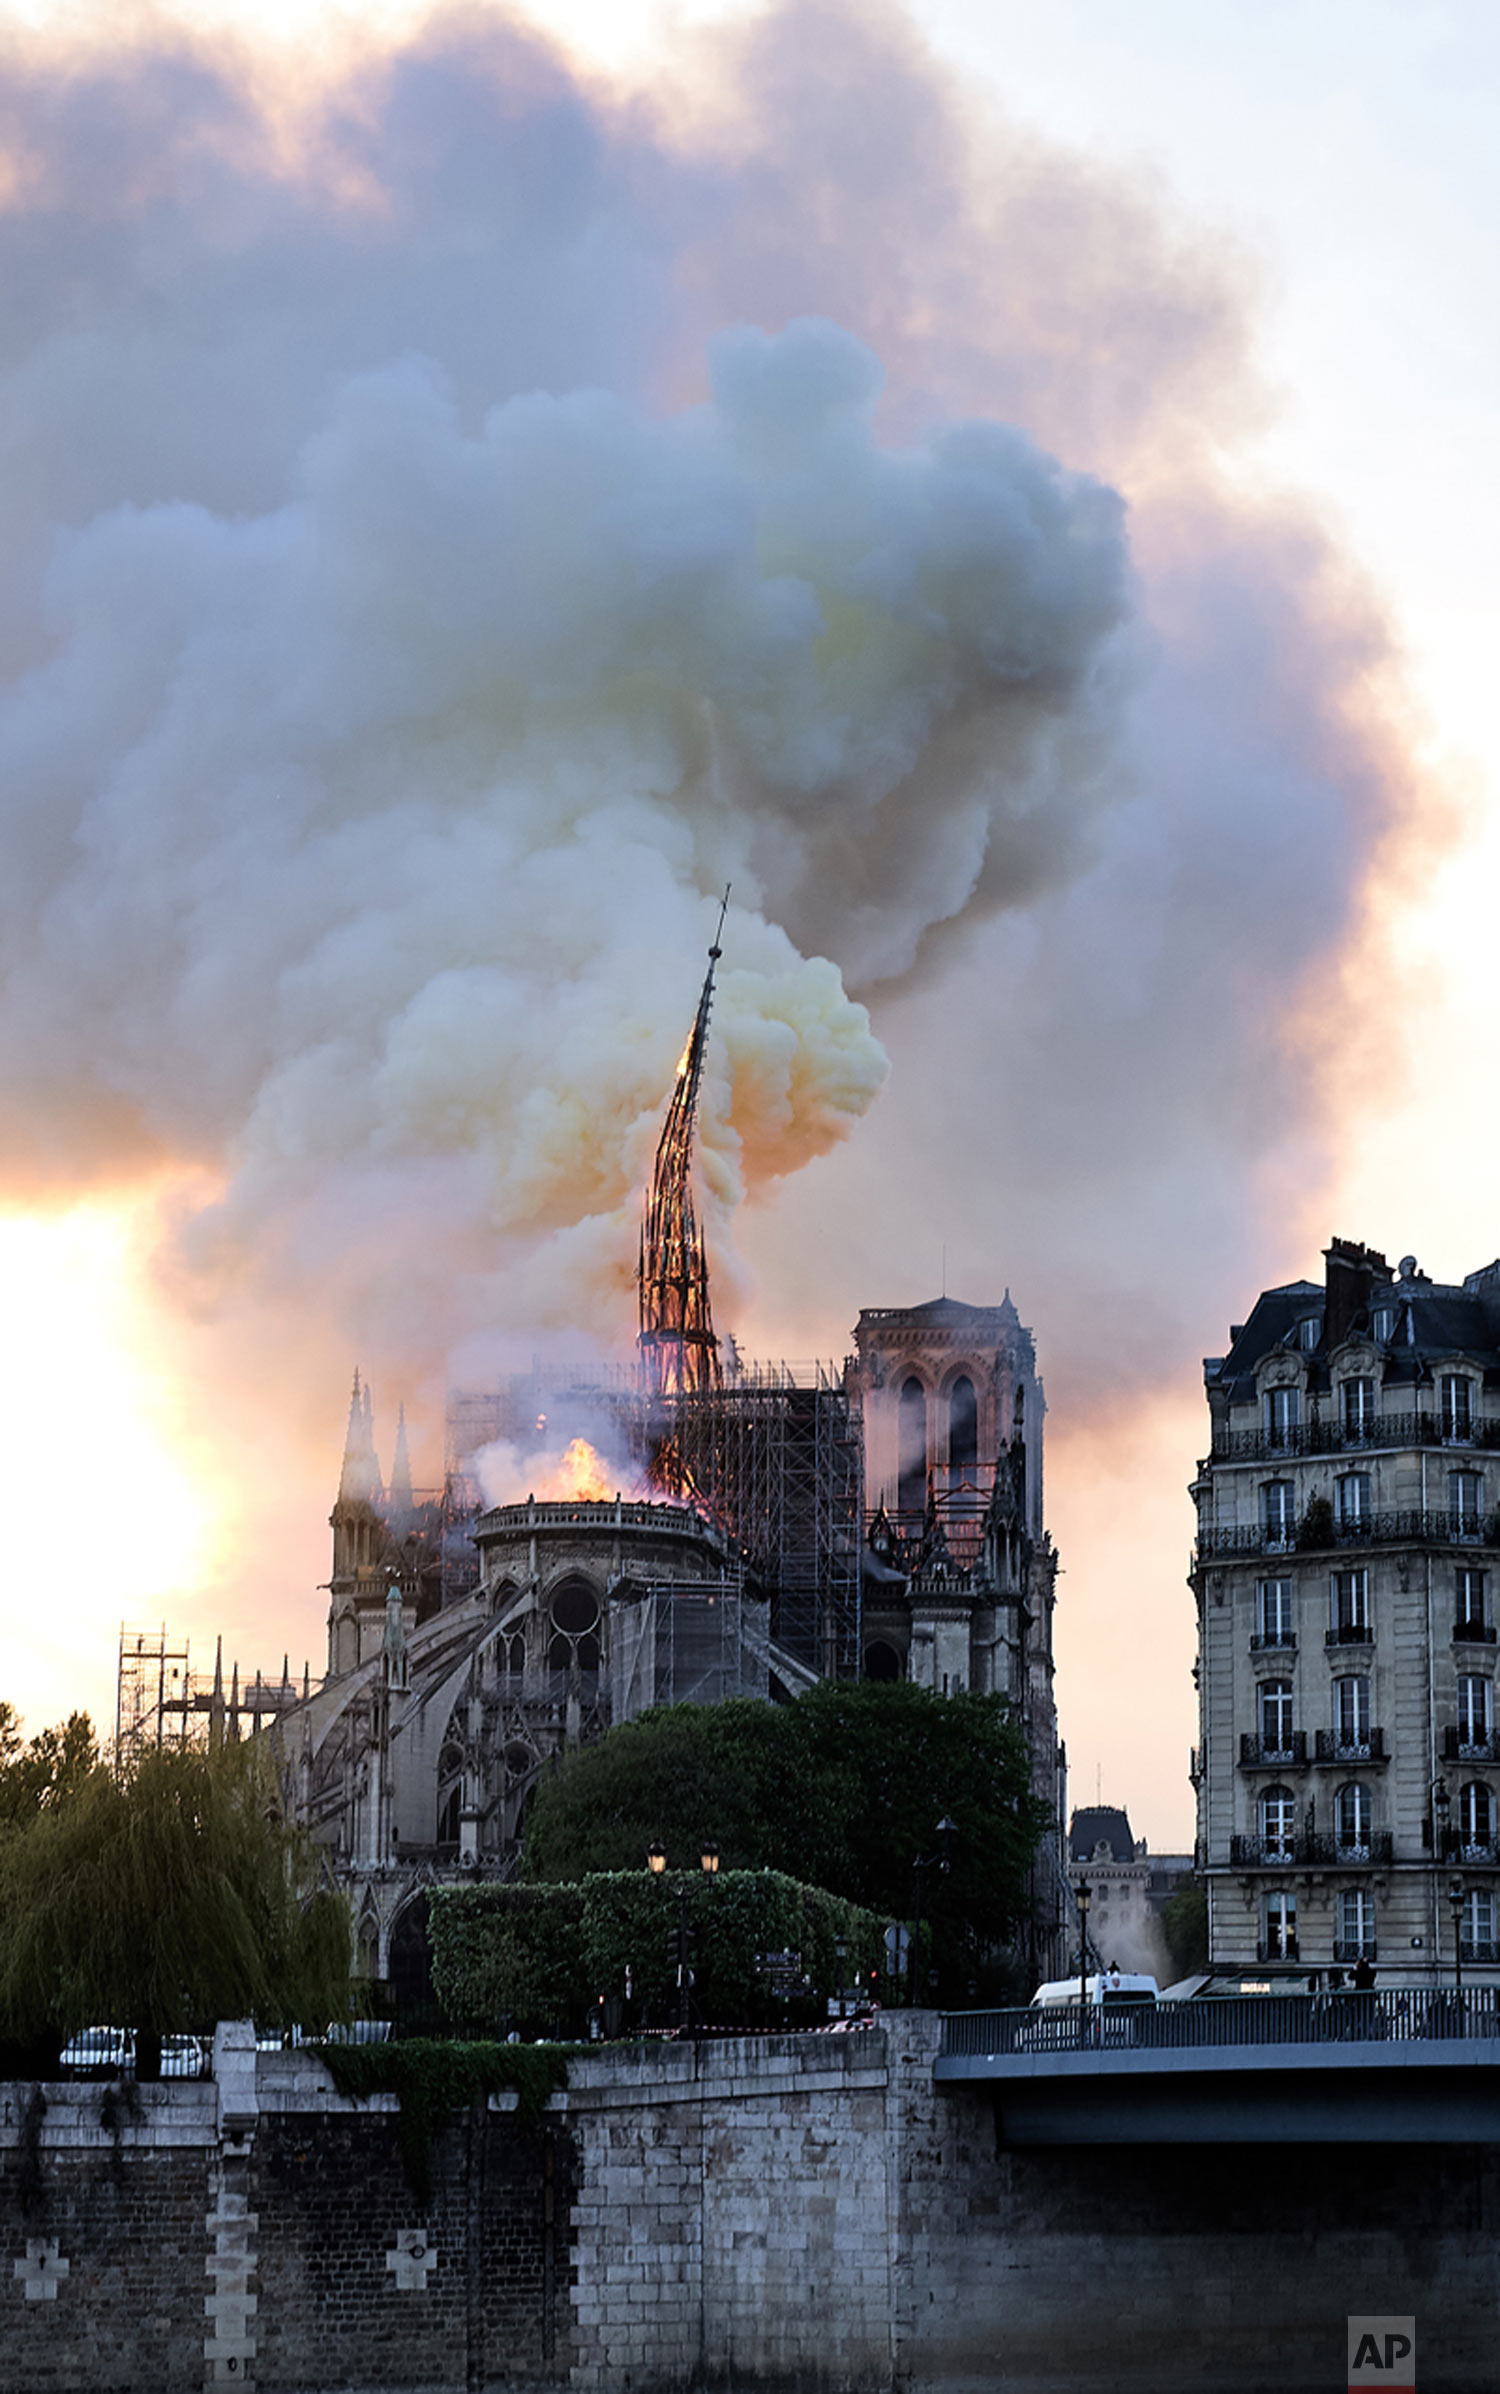 Flames and smoke rise as the spire on Notre Dame Cathedral collapses in Paris, April 15, 2019. (AP Photo/Diana Ayanna)